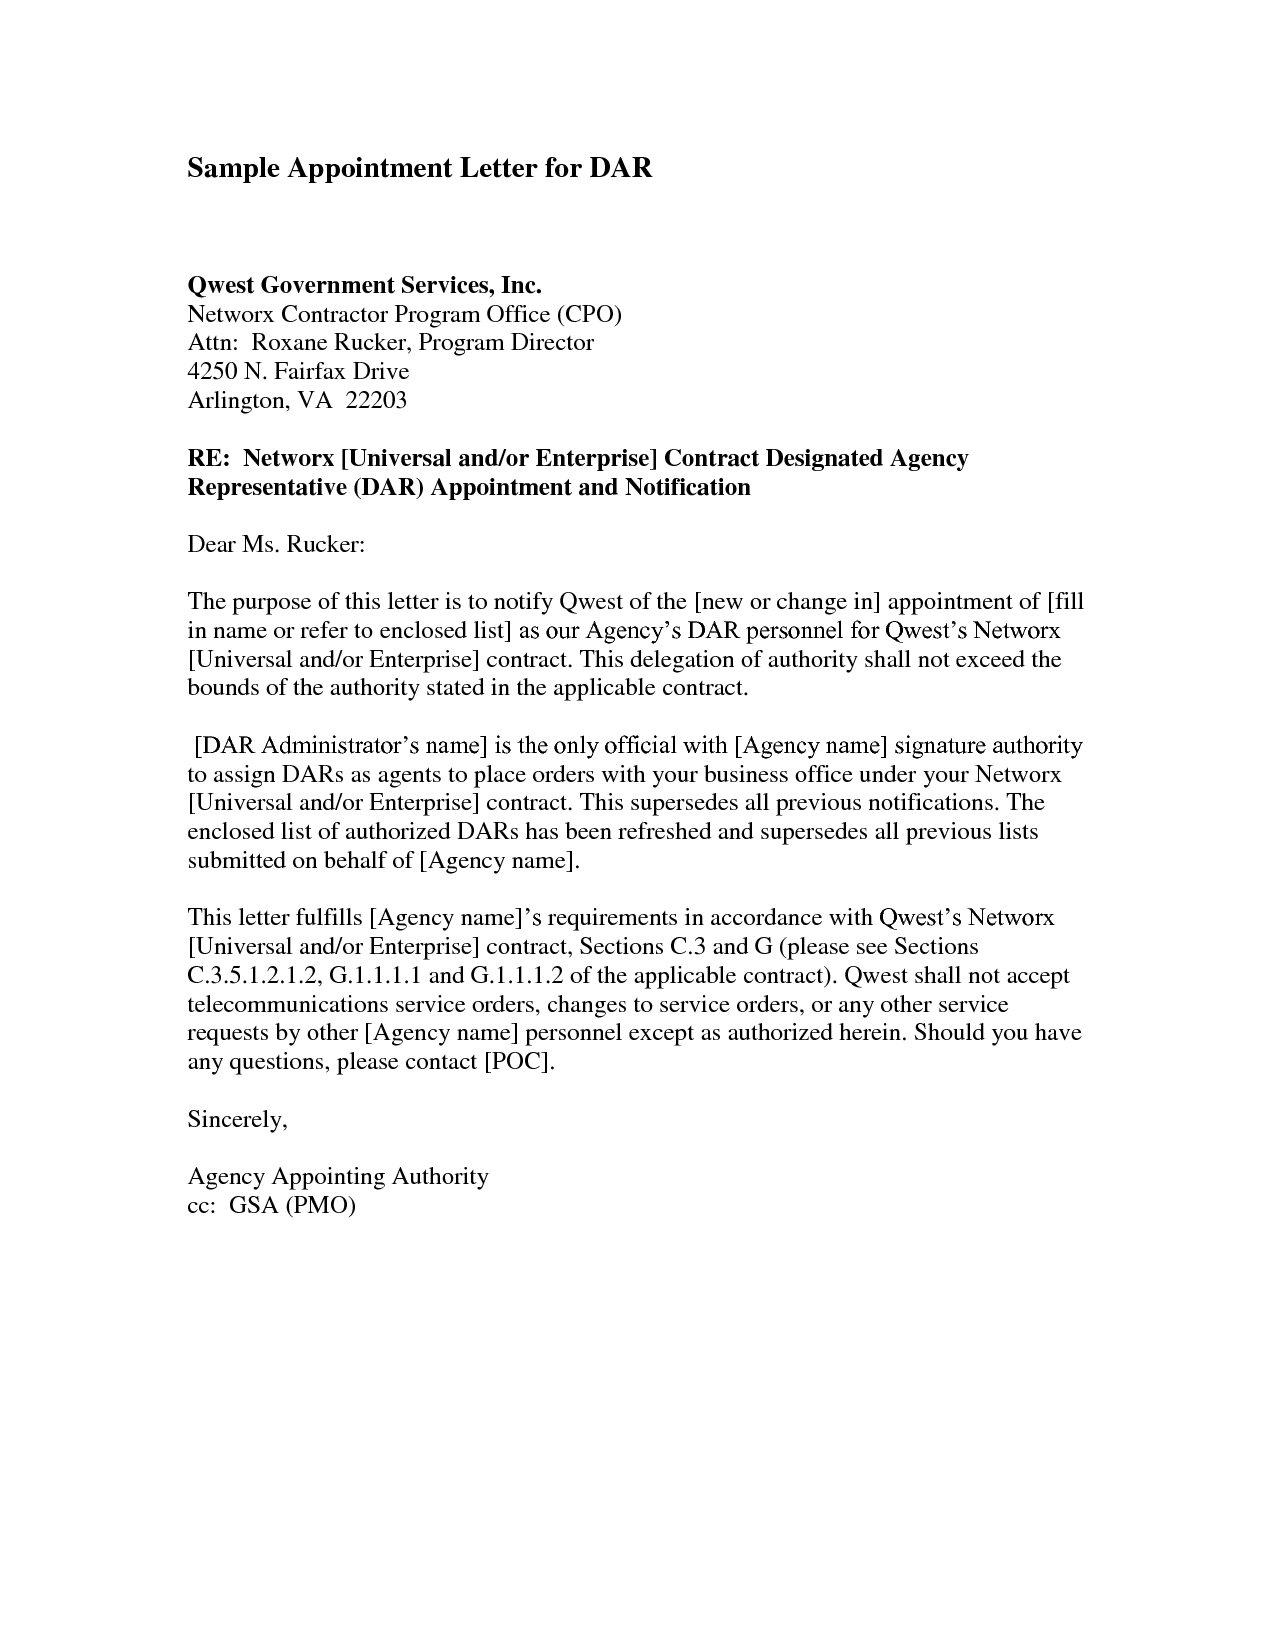 Formal Offer Letter Template - Trustee Appointment Letter Director Trustee is Appointed or